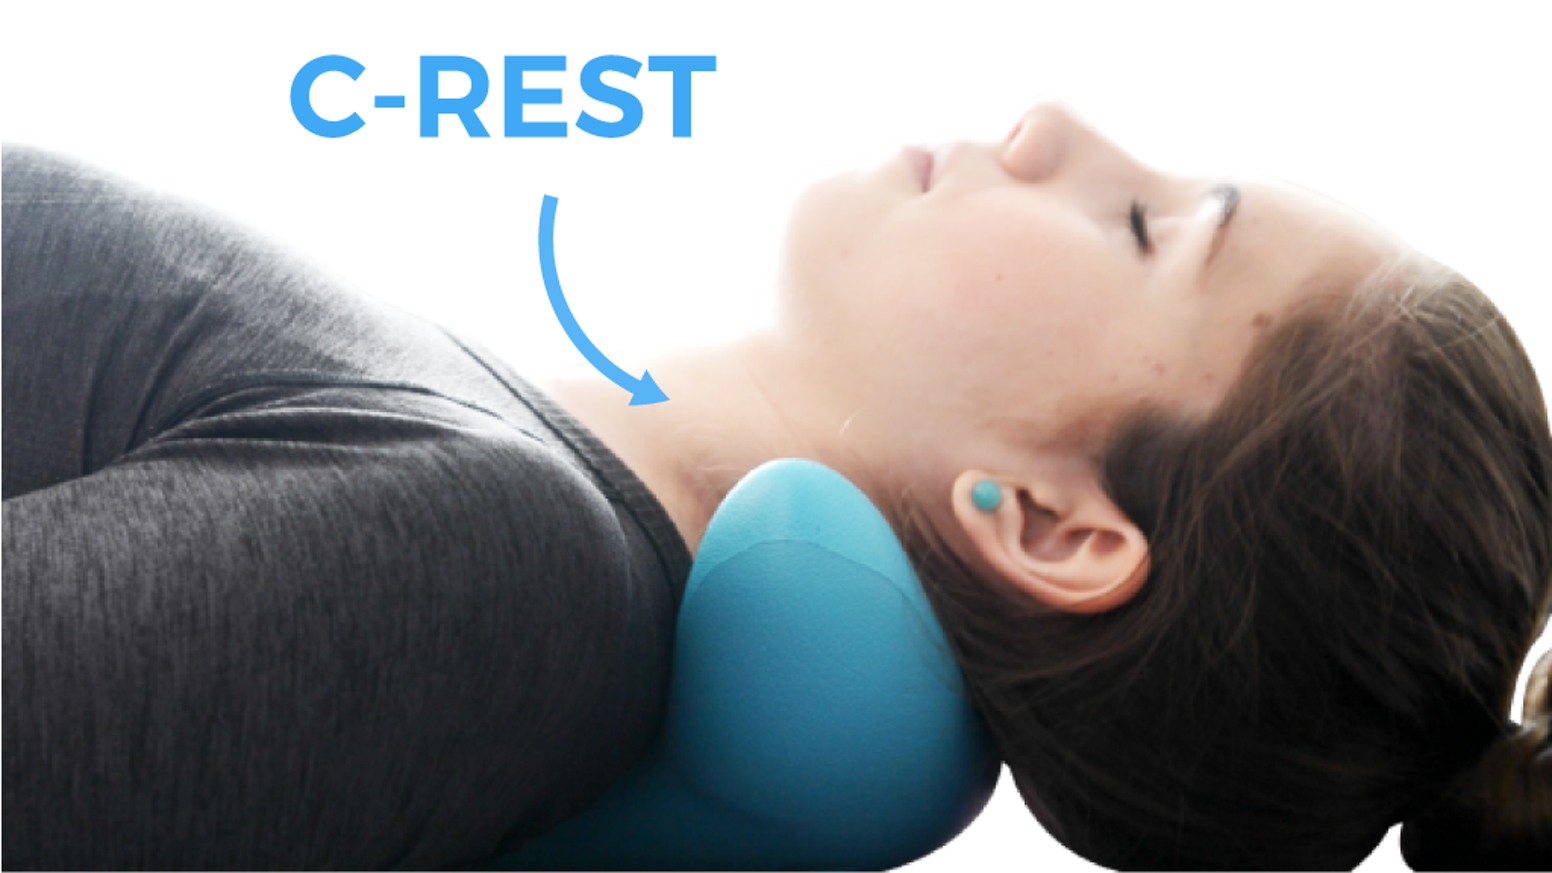 10 minutes! Relieve Tension & Stress  in Neck & Shoulder. C-REST is comfortable personal massager. Portable, so you can rest anywhere.